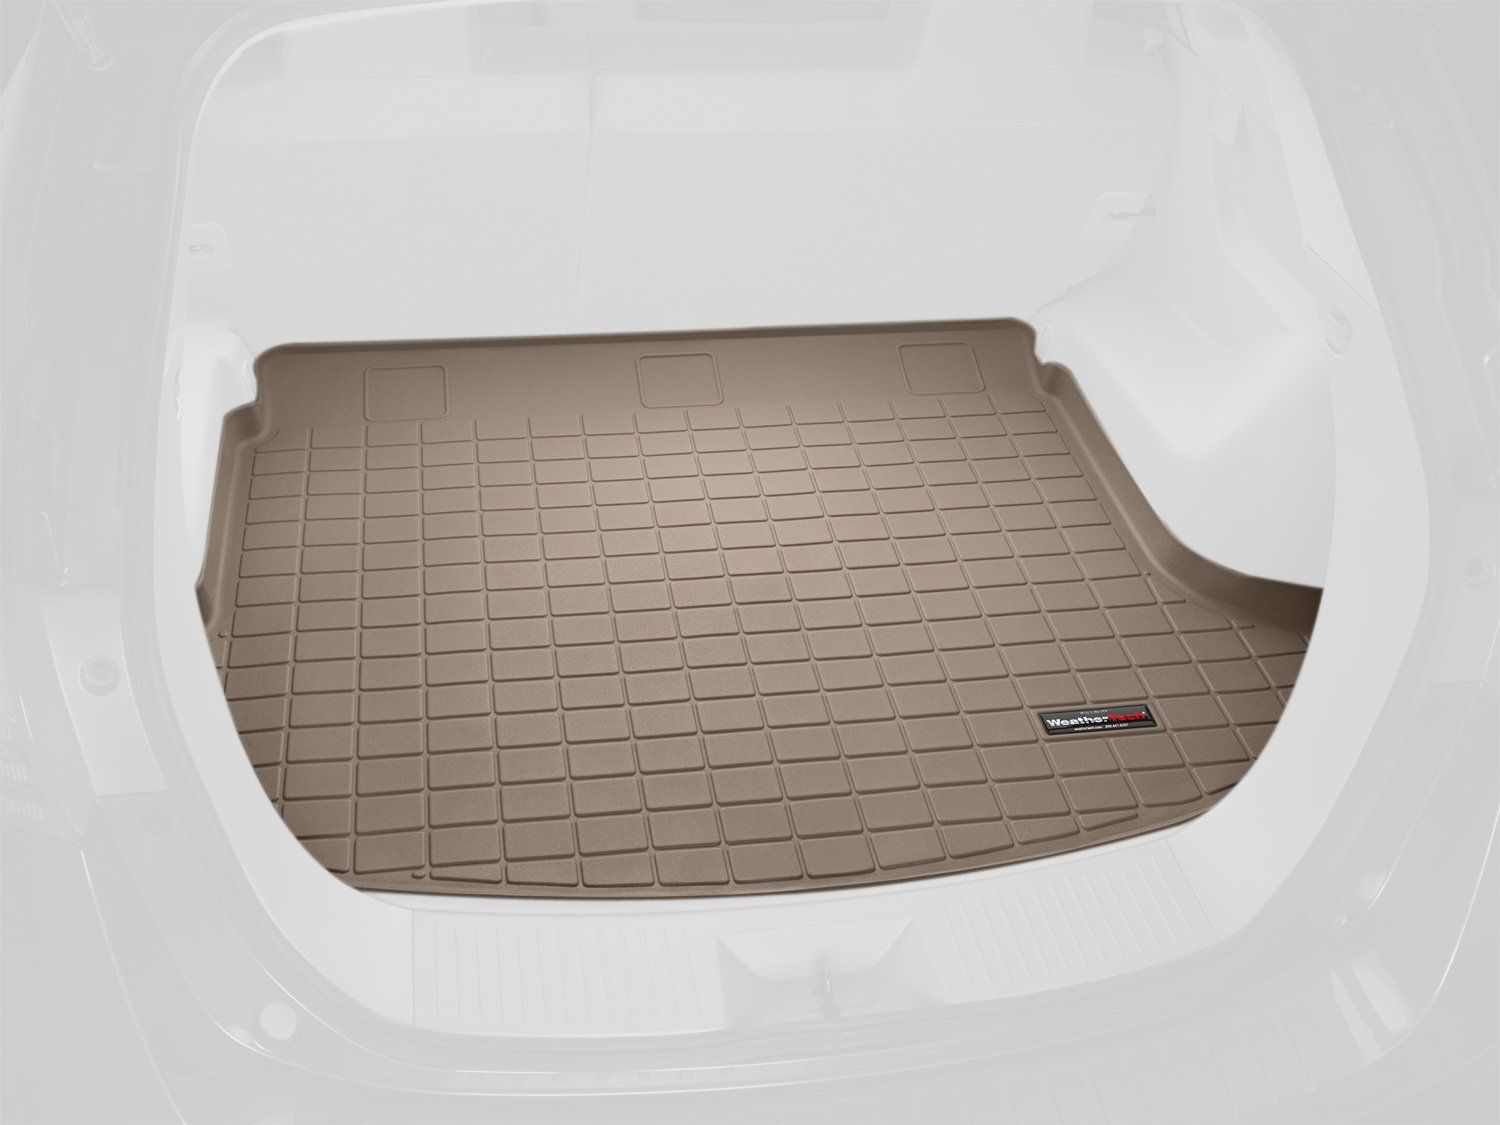 WeatherTech Custom Fit Cargo Liners for Porsche Cayenne